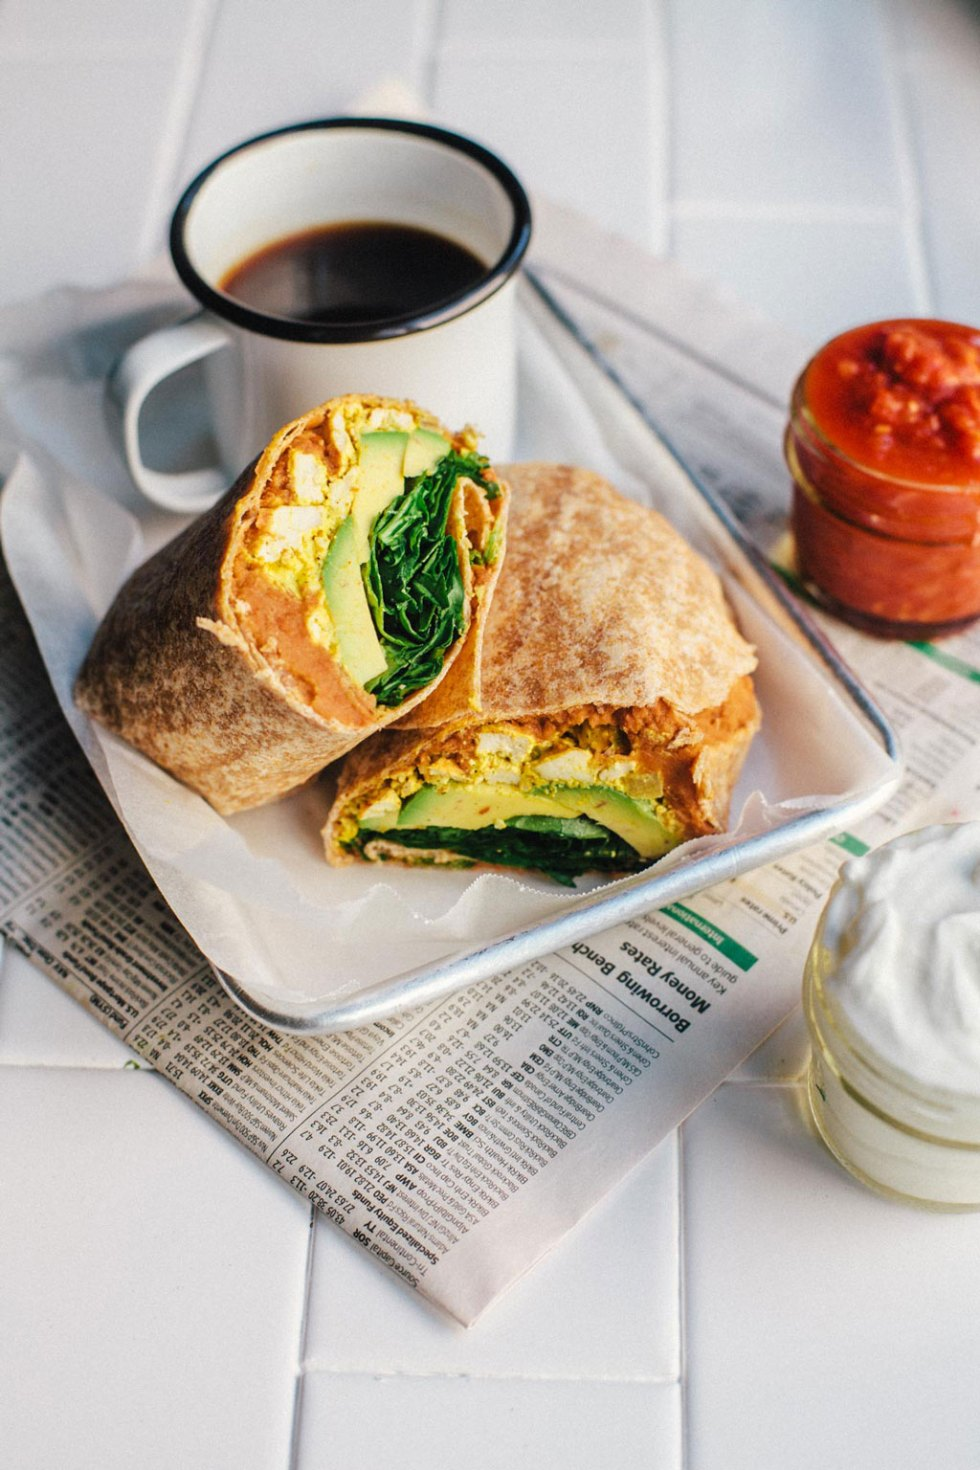 An vegan tofu scramble breakfast burrito cut in half on a small tray with a cup of coffee.